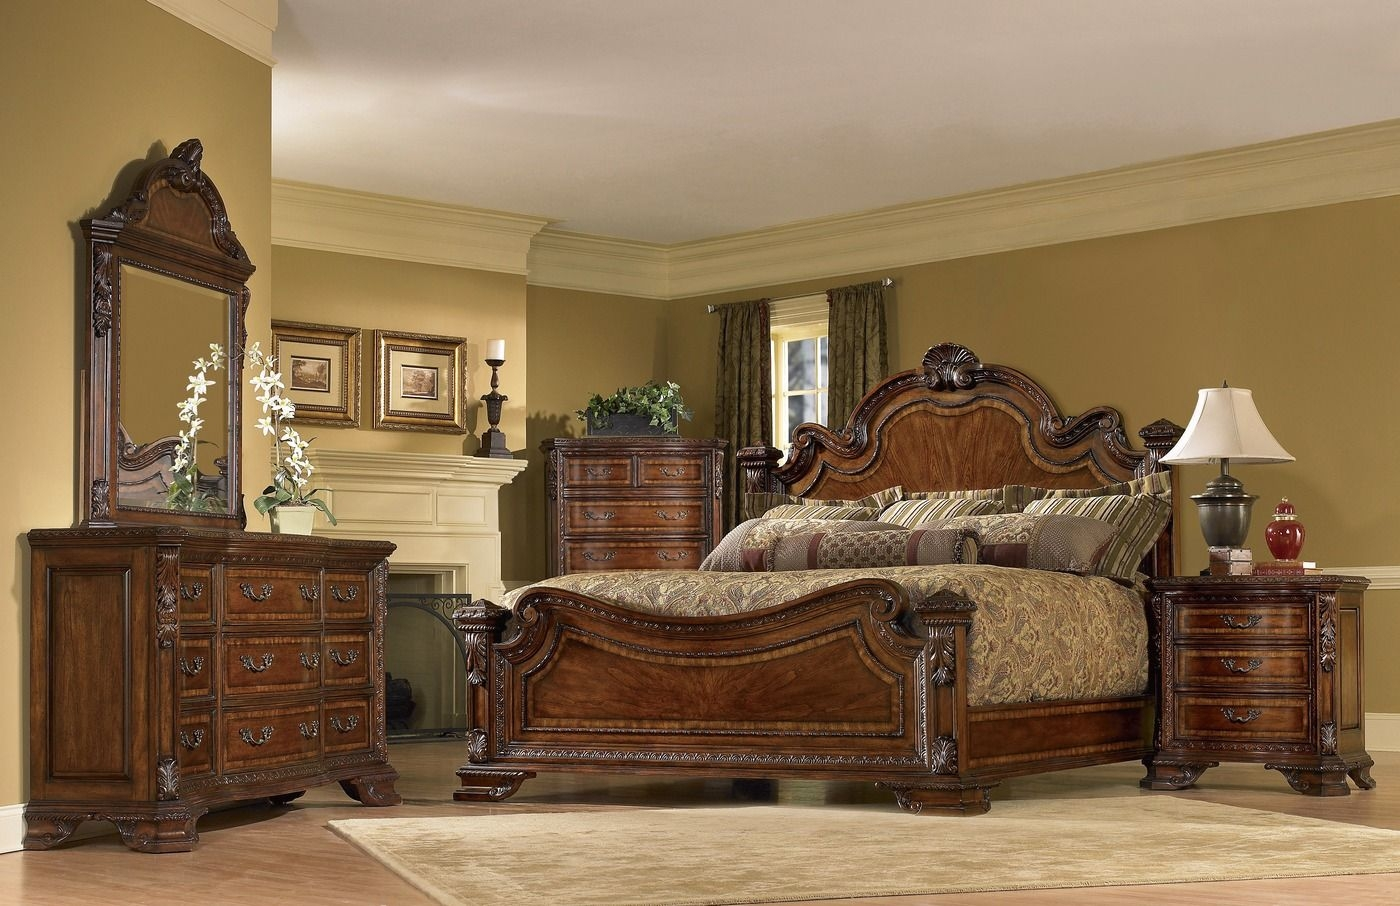 Old World Bedroom Set  European Style Bedroom Furniture